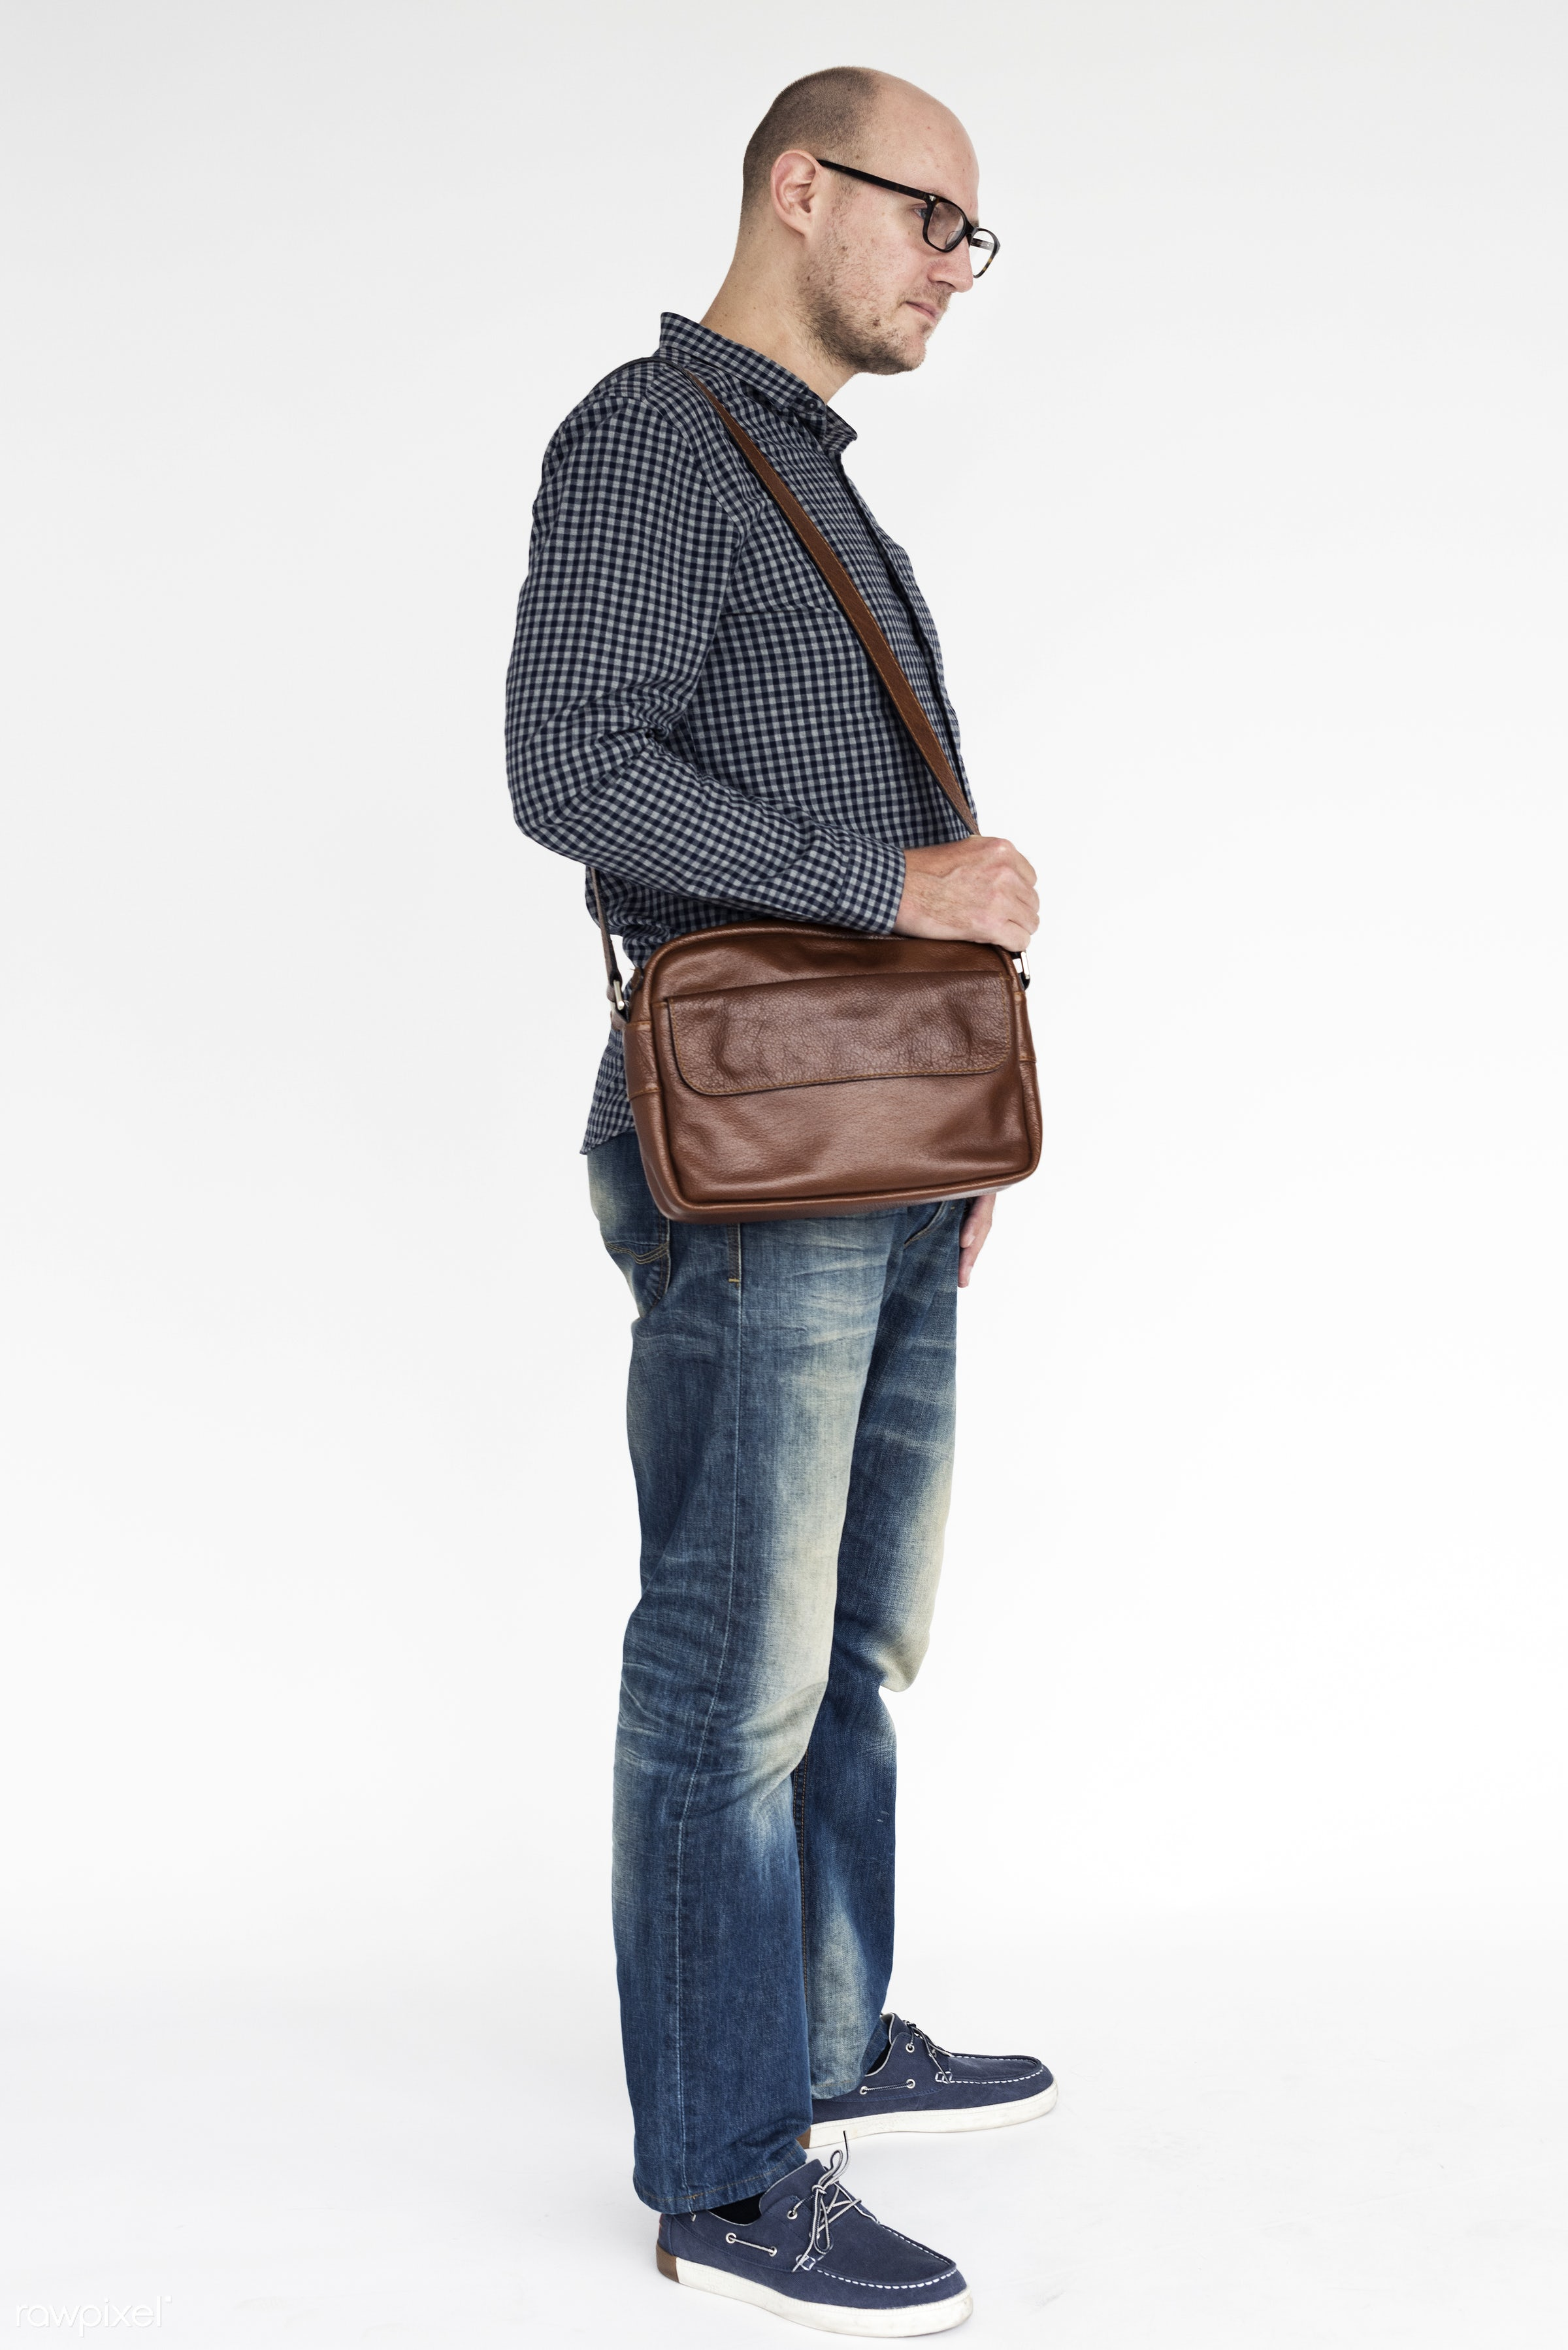 studio, expression, person, people, caucasian, cheerful, smiling, work, isolated, bag, white, happiness, candid, fun,...